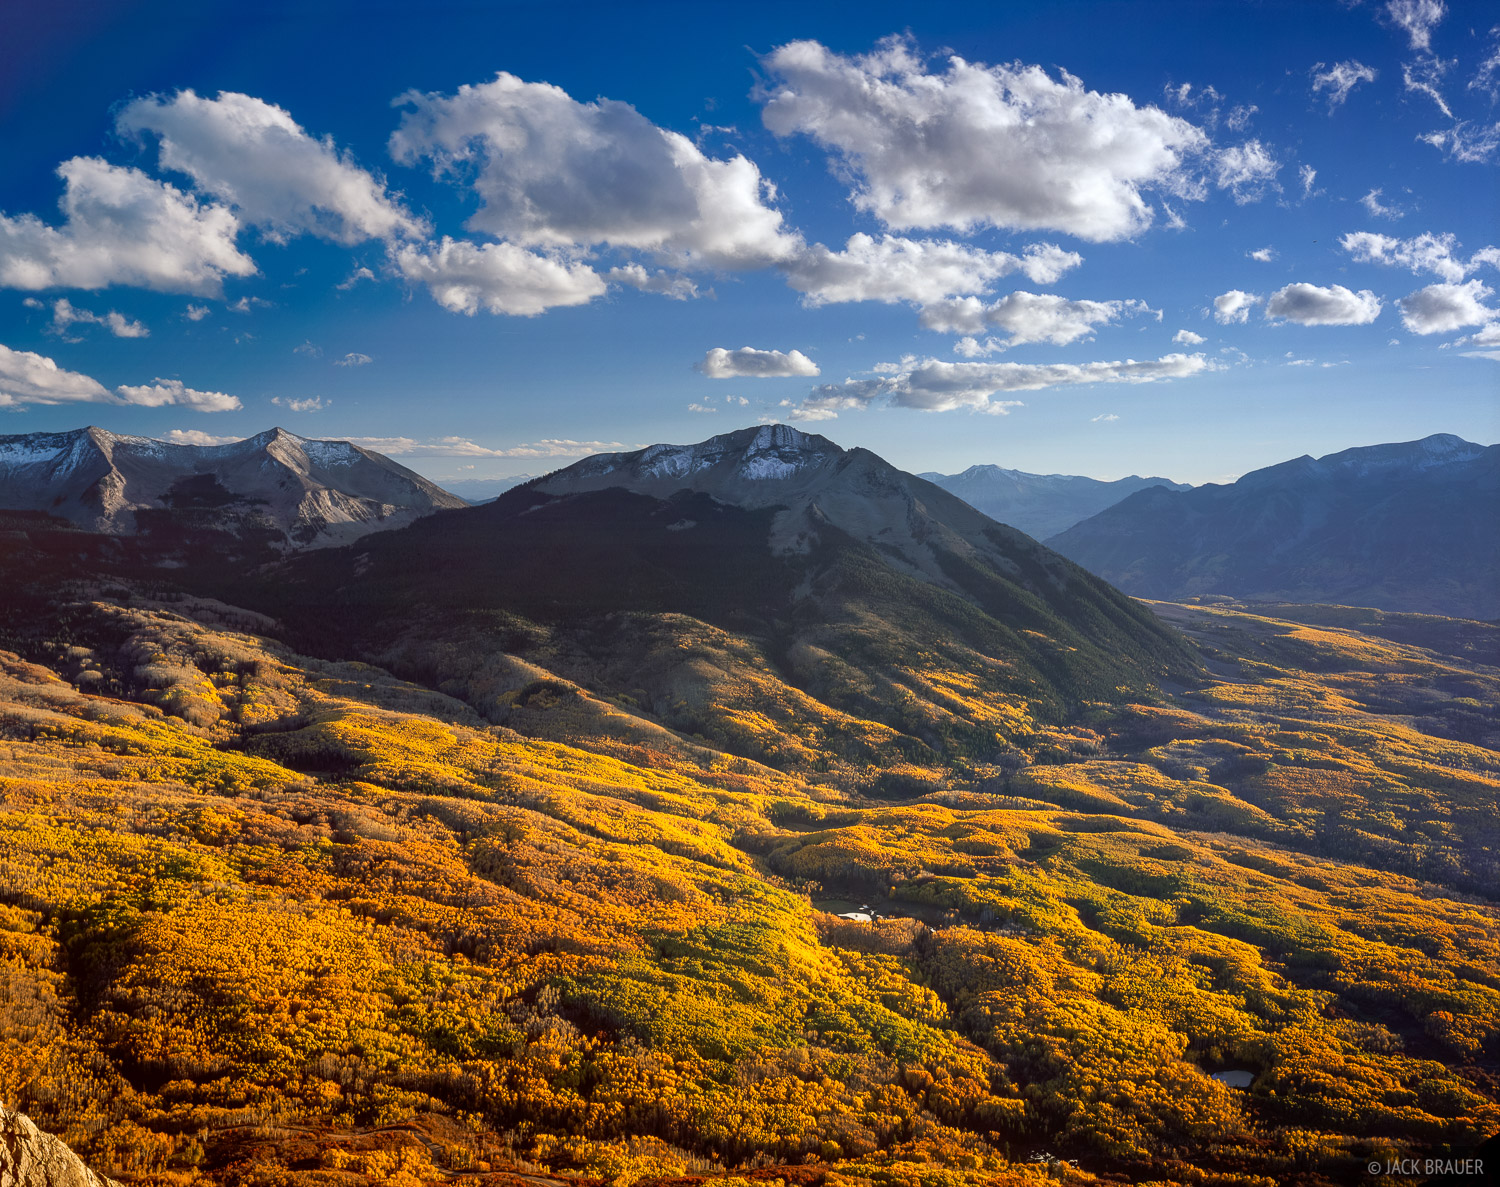 Autumn vista of the golden aspens on the slopes of West Beckwith Mountain, as seen from the summit ridge of Marcellina Mountain...